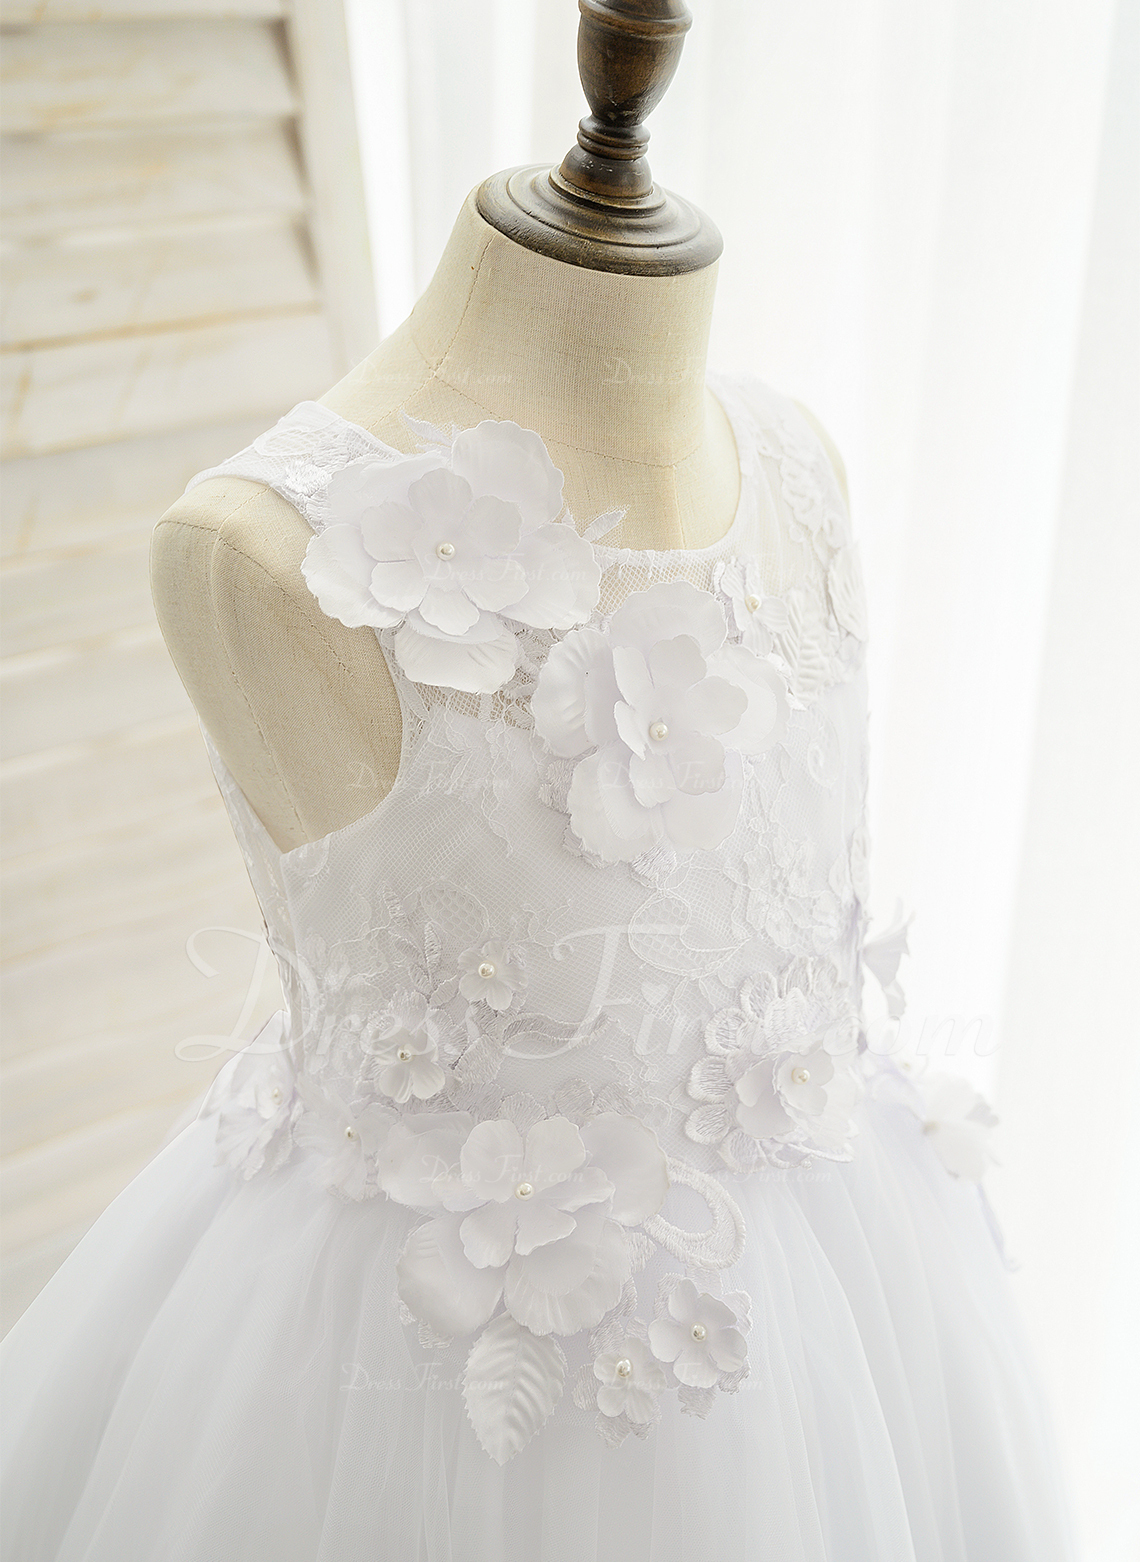 Ball-Gown/Princess Floor-length Flower Girl Dress - Satin/Tulle/Lace Sleeveless Scoop Neck With Appliques